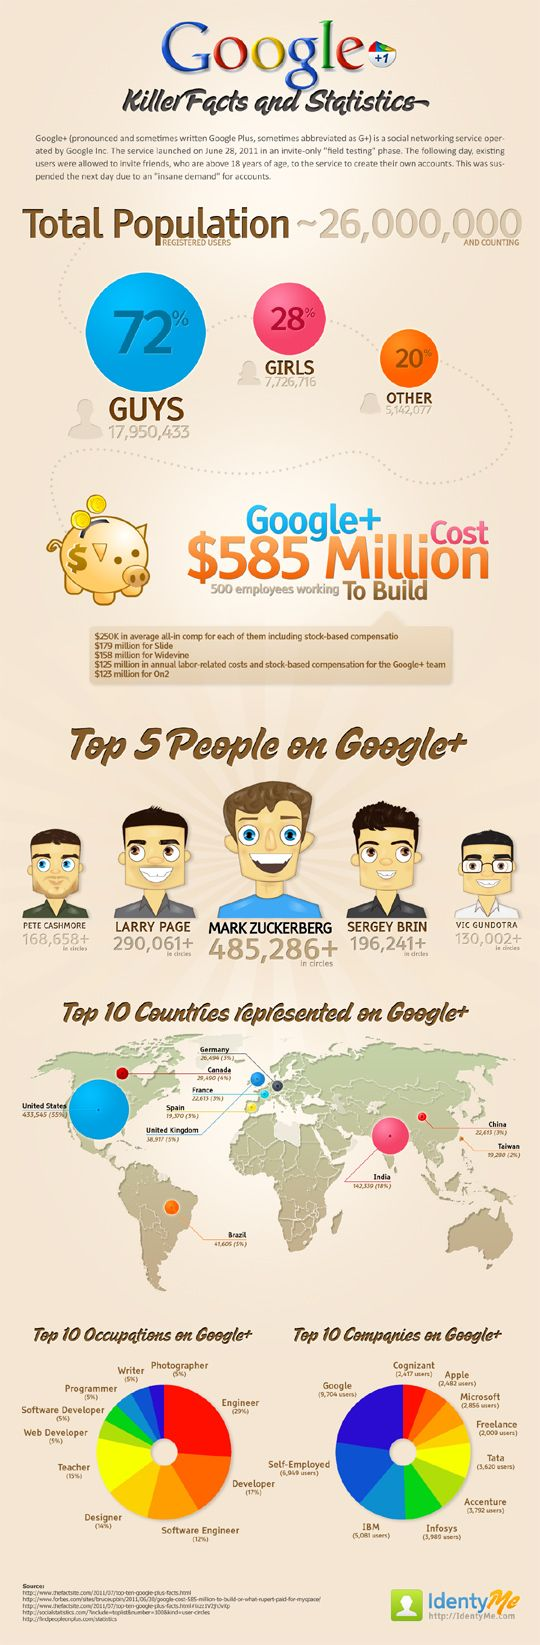 Facts and Statistics About Google Plus